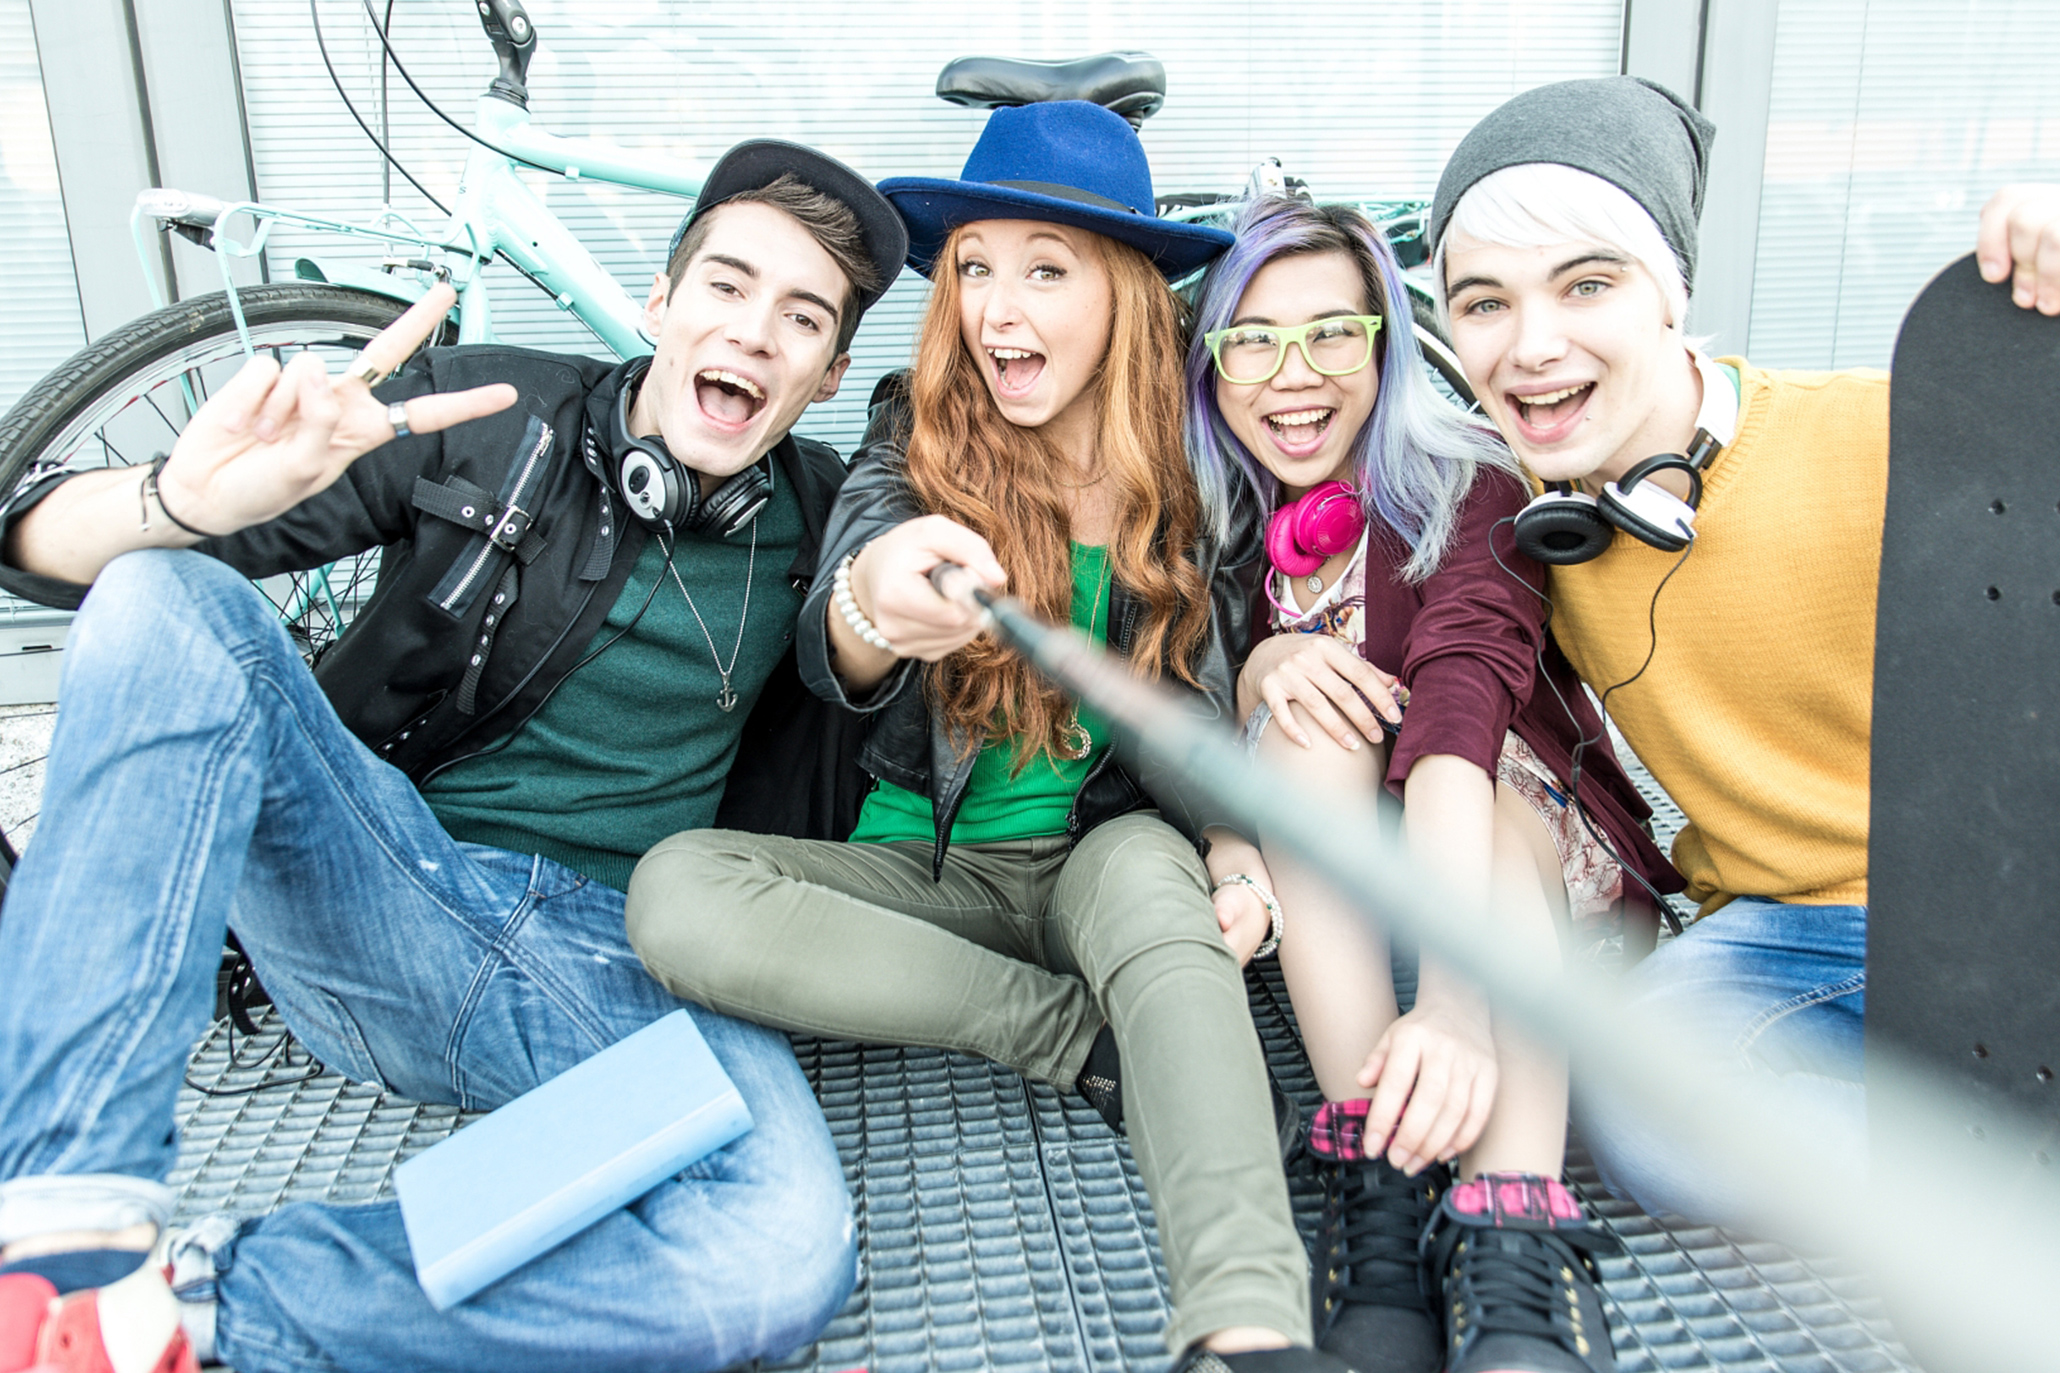 Is Your Business Ready for the Rise of Generation Z?